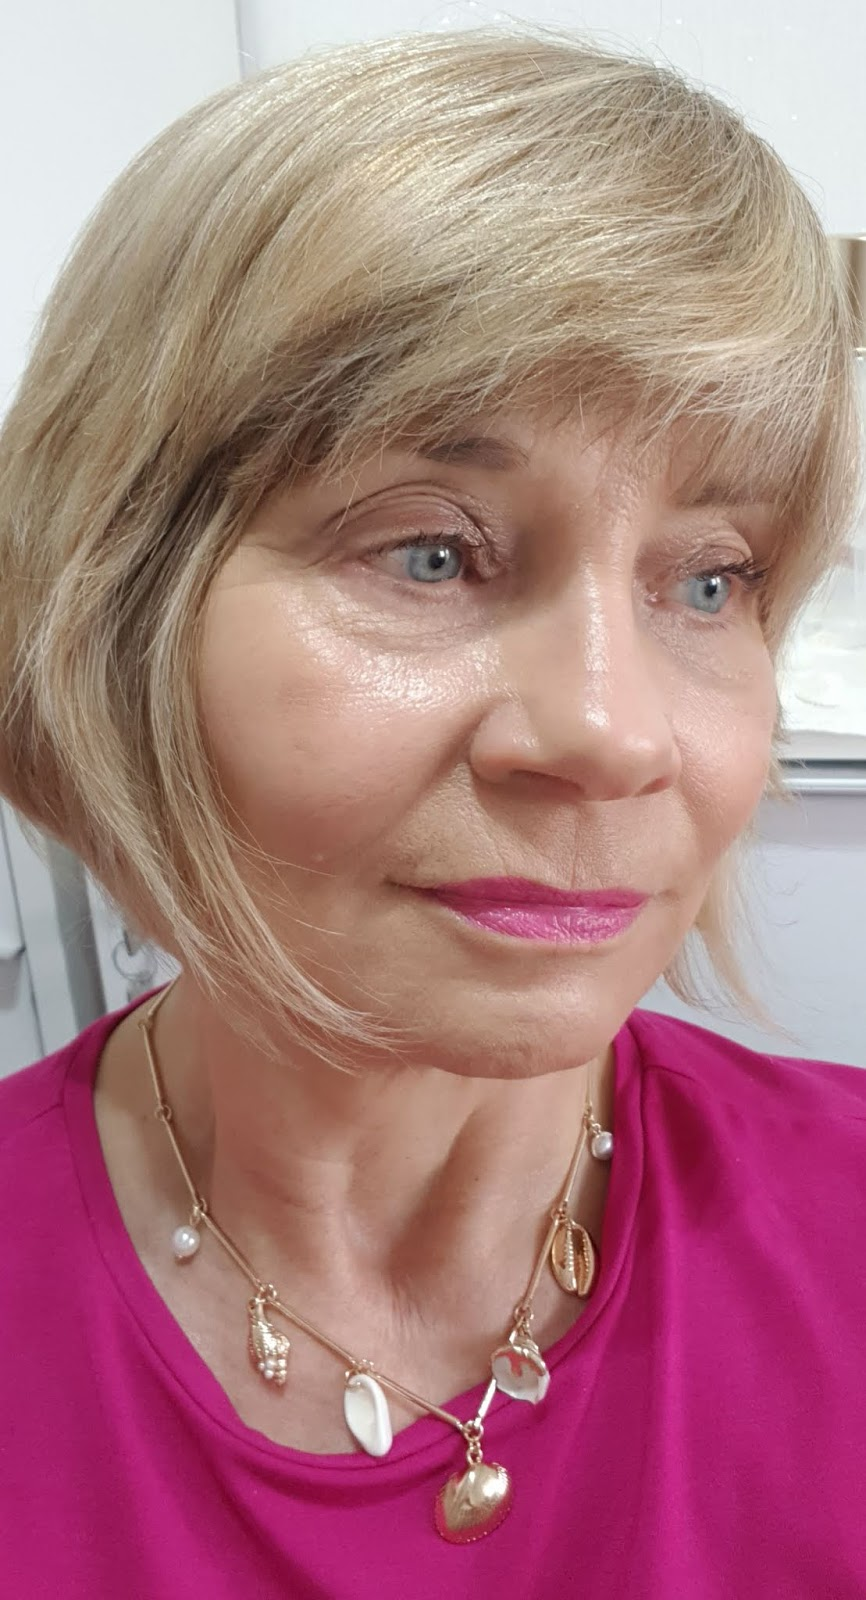 Woman aged over 50 with pink top and pink lipstick